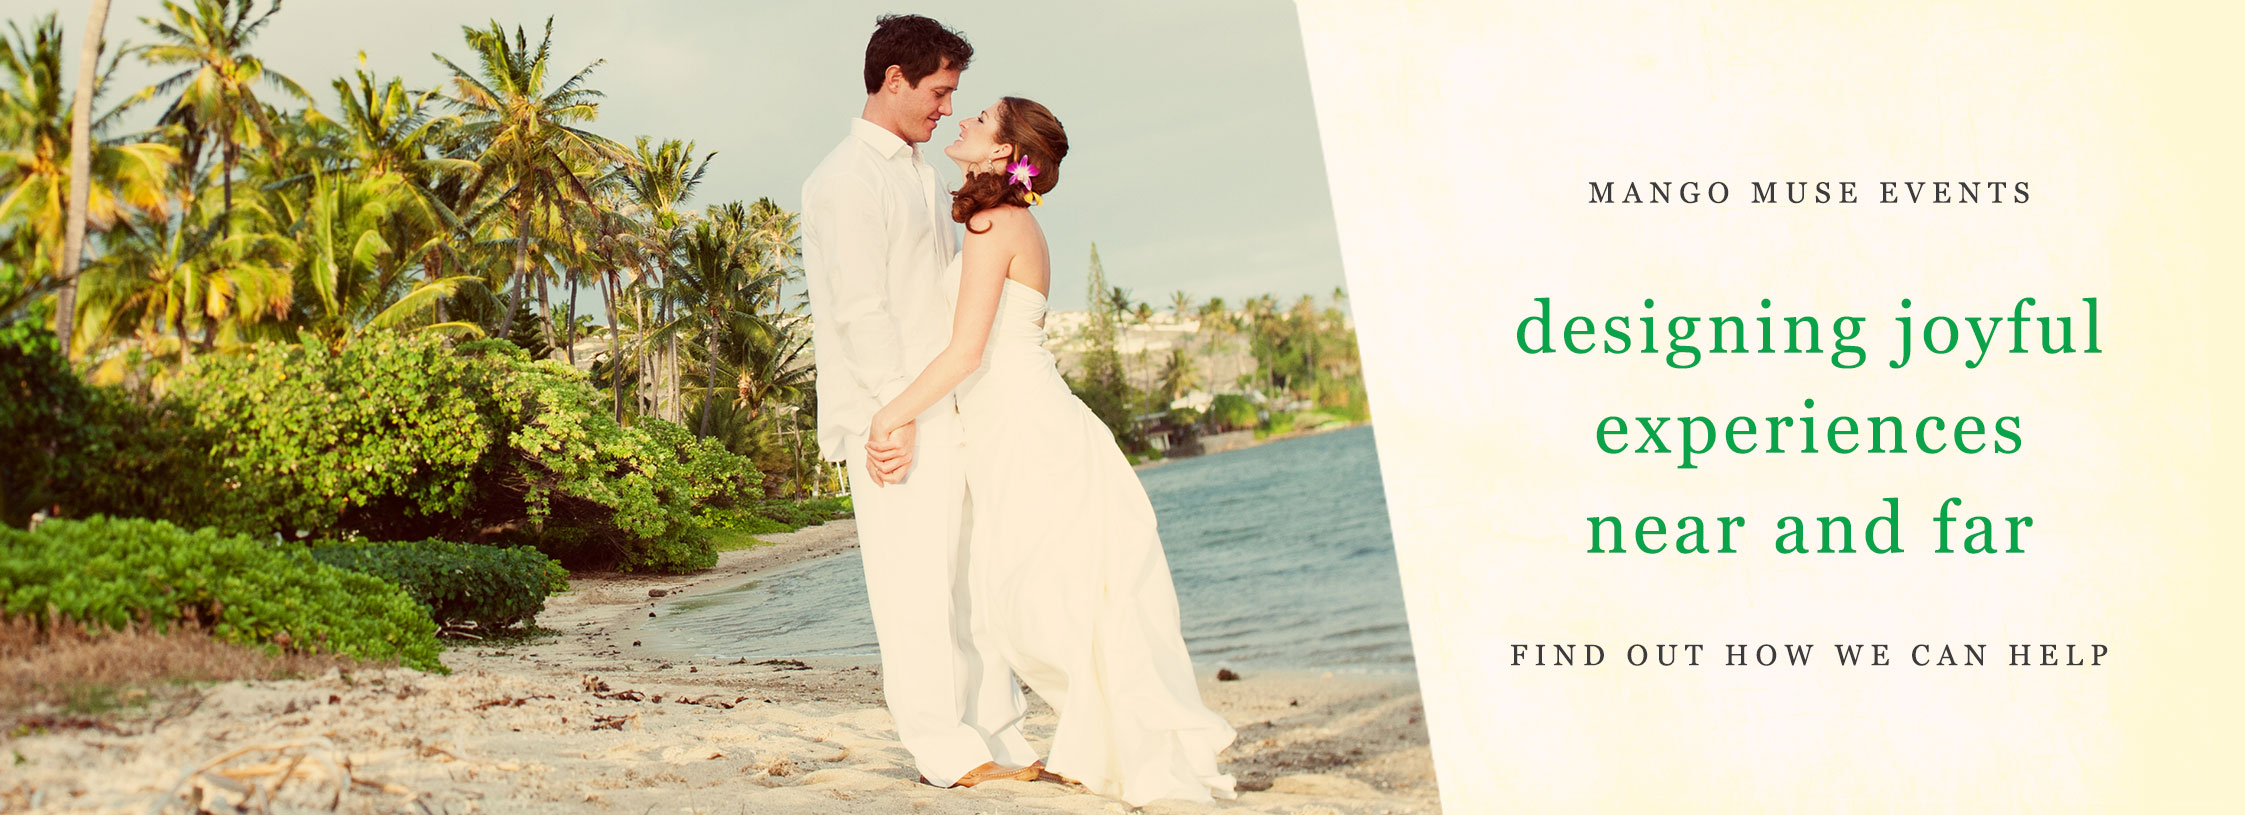 Destination wedding on the beach in Hawaii by Destination wedding planner Mango Muse Events